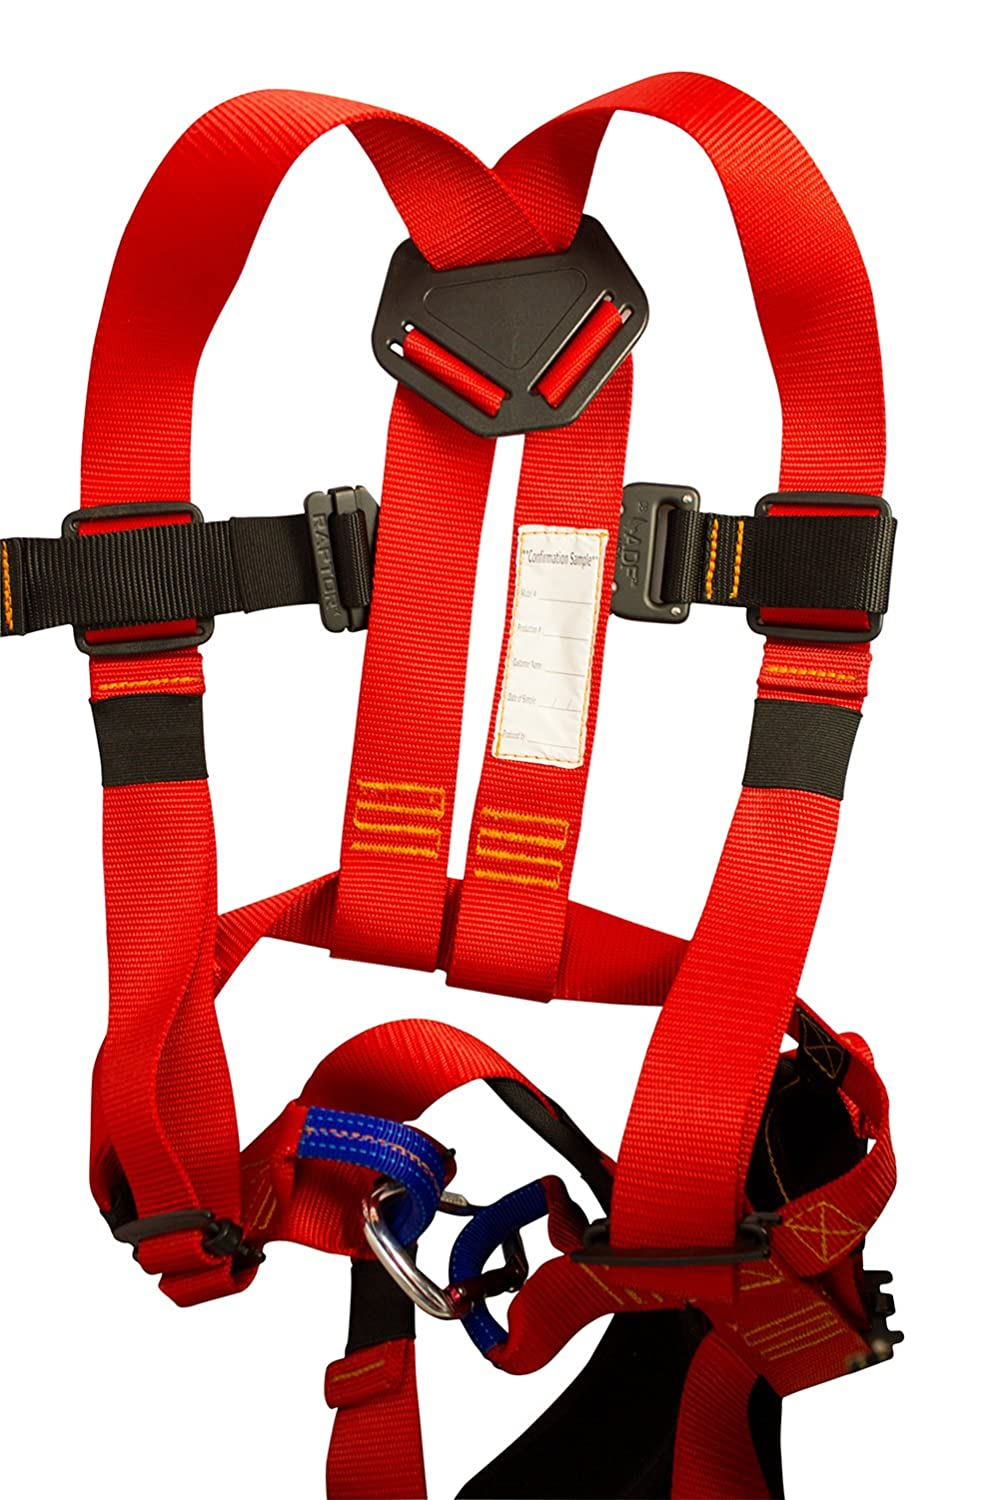 Fusion Climb Warrior Kids Full Body Climbing Rope Course Harness Red//Black KH-201B-RED